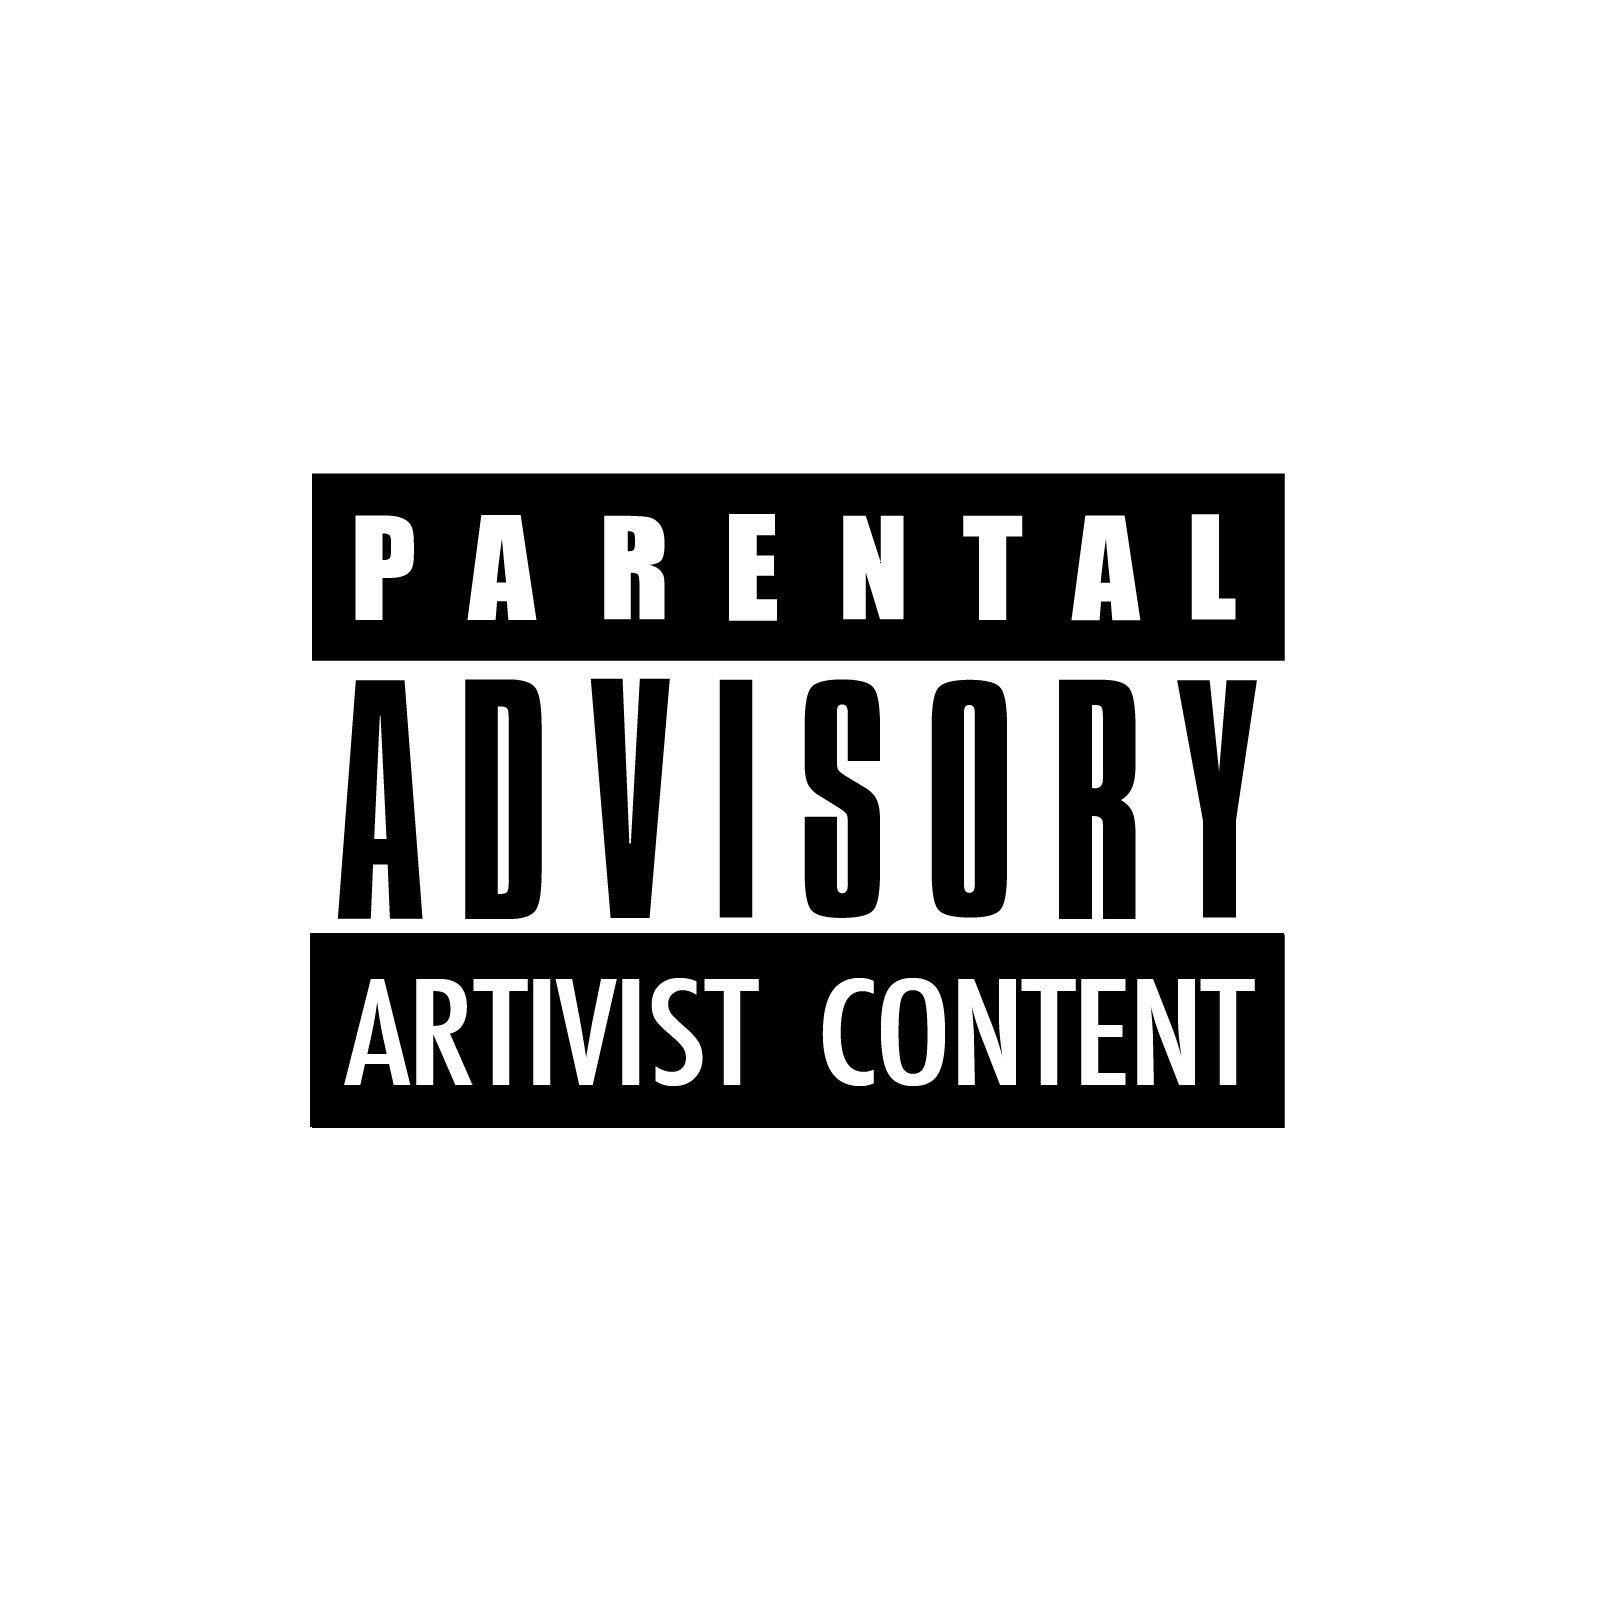 parental_advisory_explicit_content_lrgr_logo.png